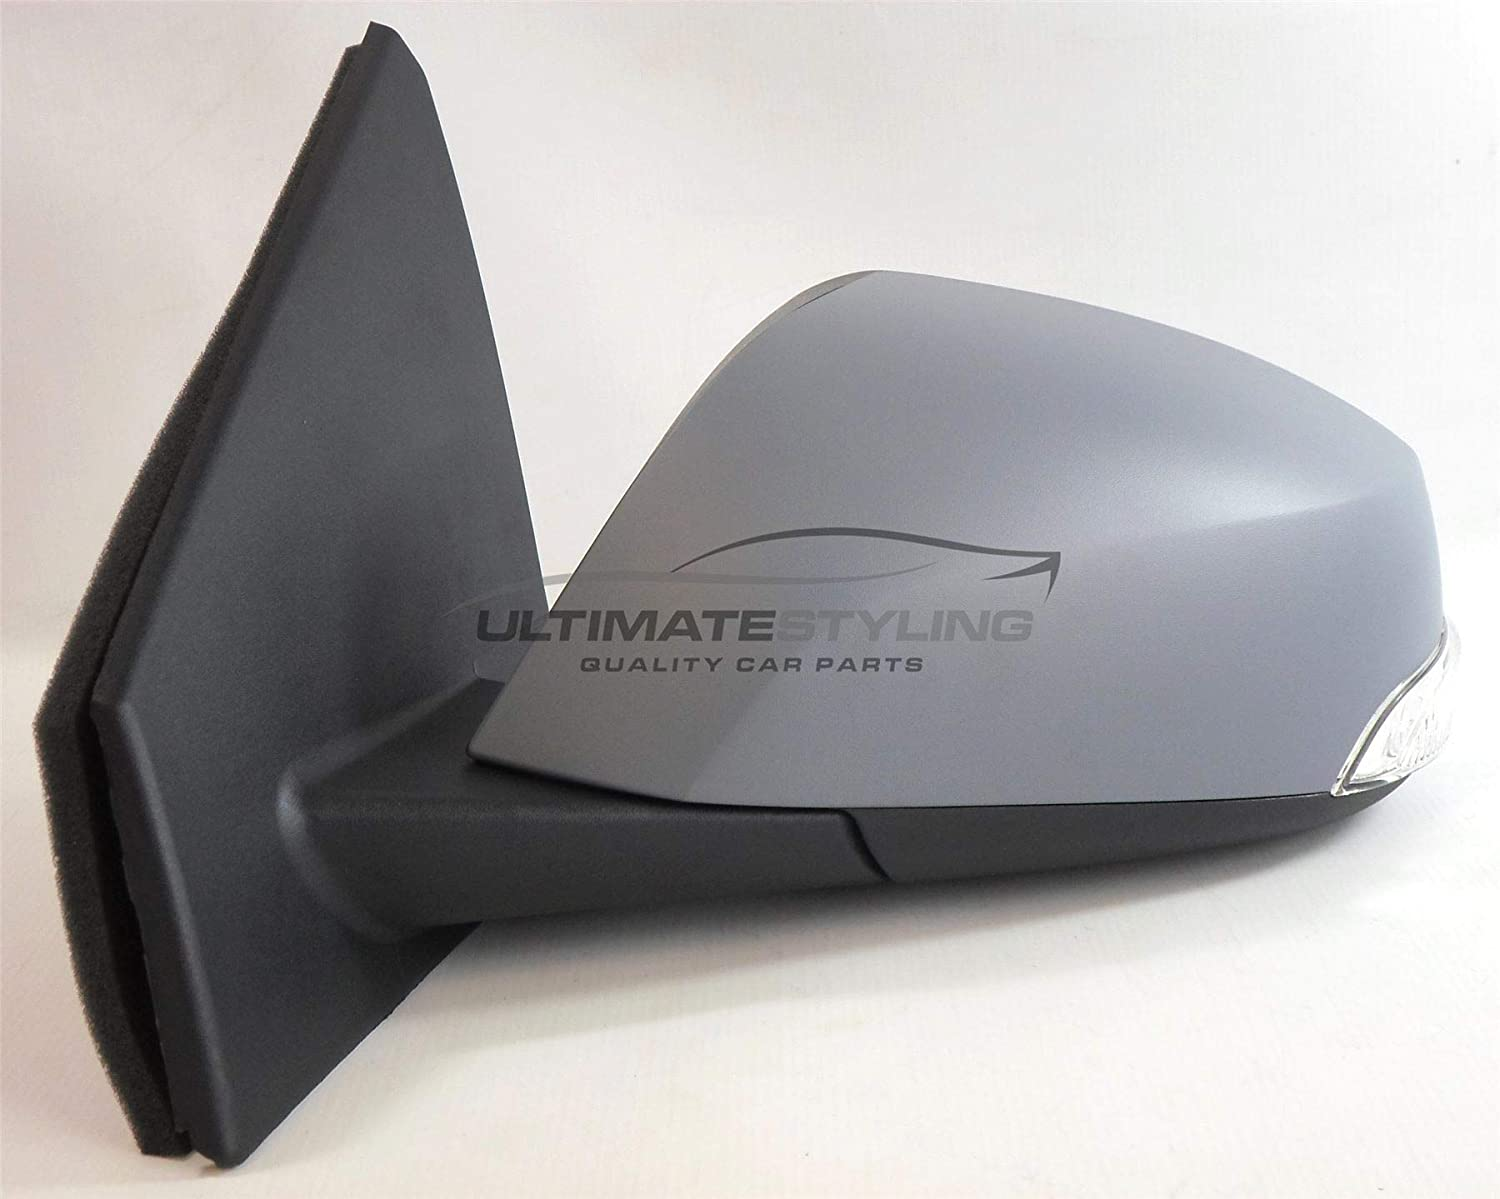 LH Ultimate Styling Replacement Electric Power Folding Wing Door Mirror With Heated Glass With Indicator With Puddle Lamp With Primed Mirror Cover Cap Side Of Product Passenger Side